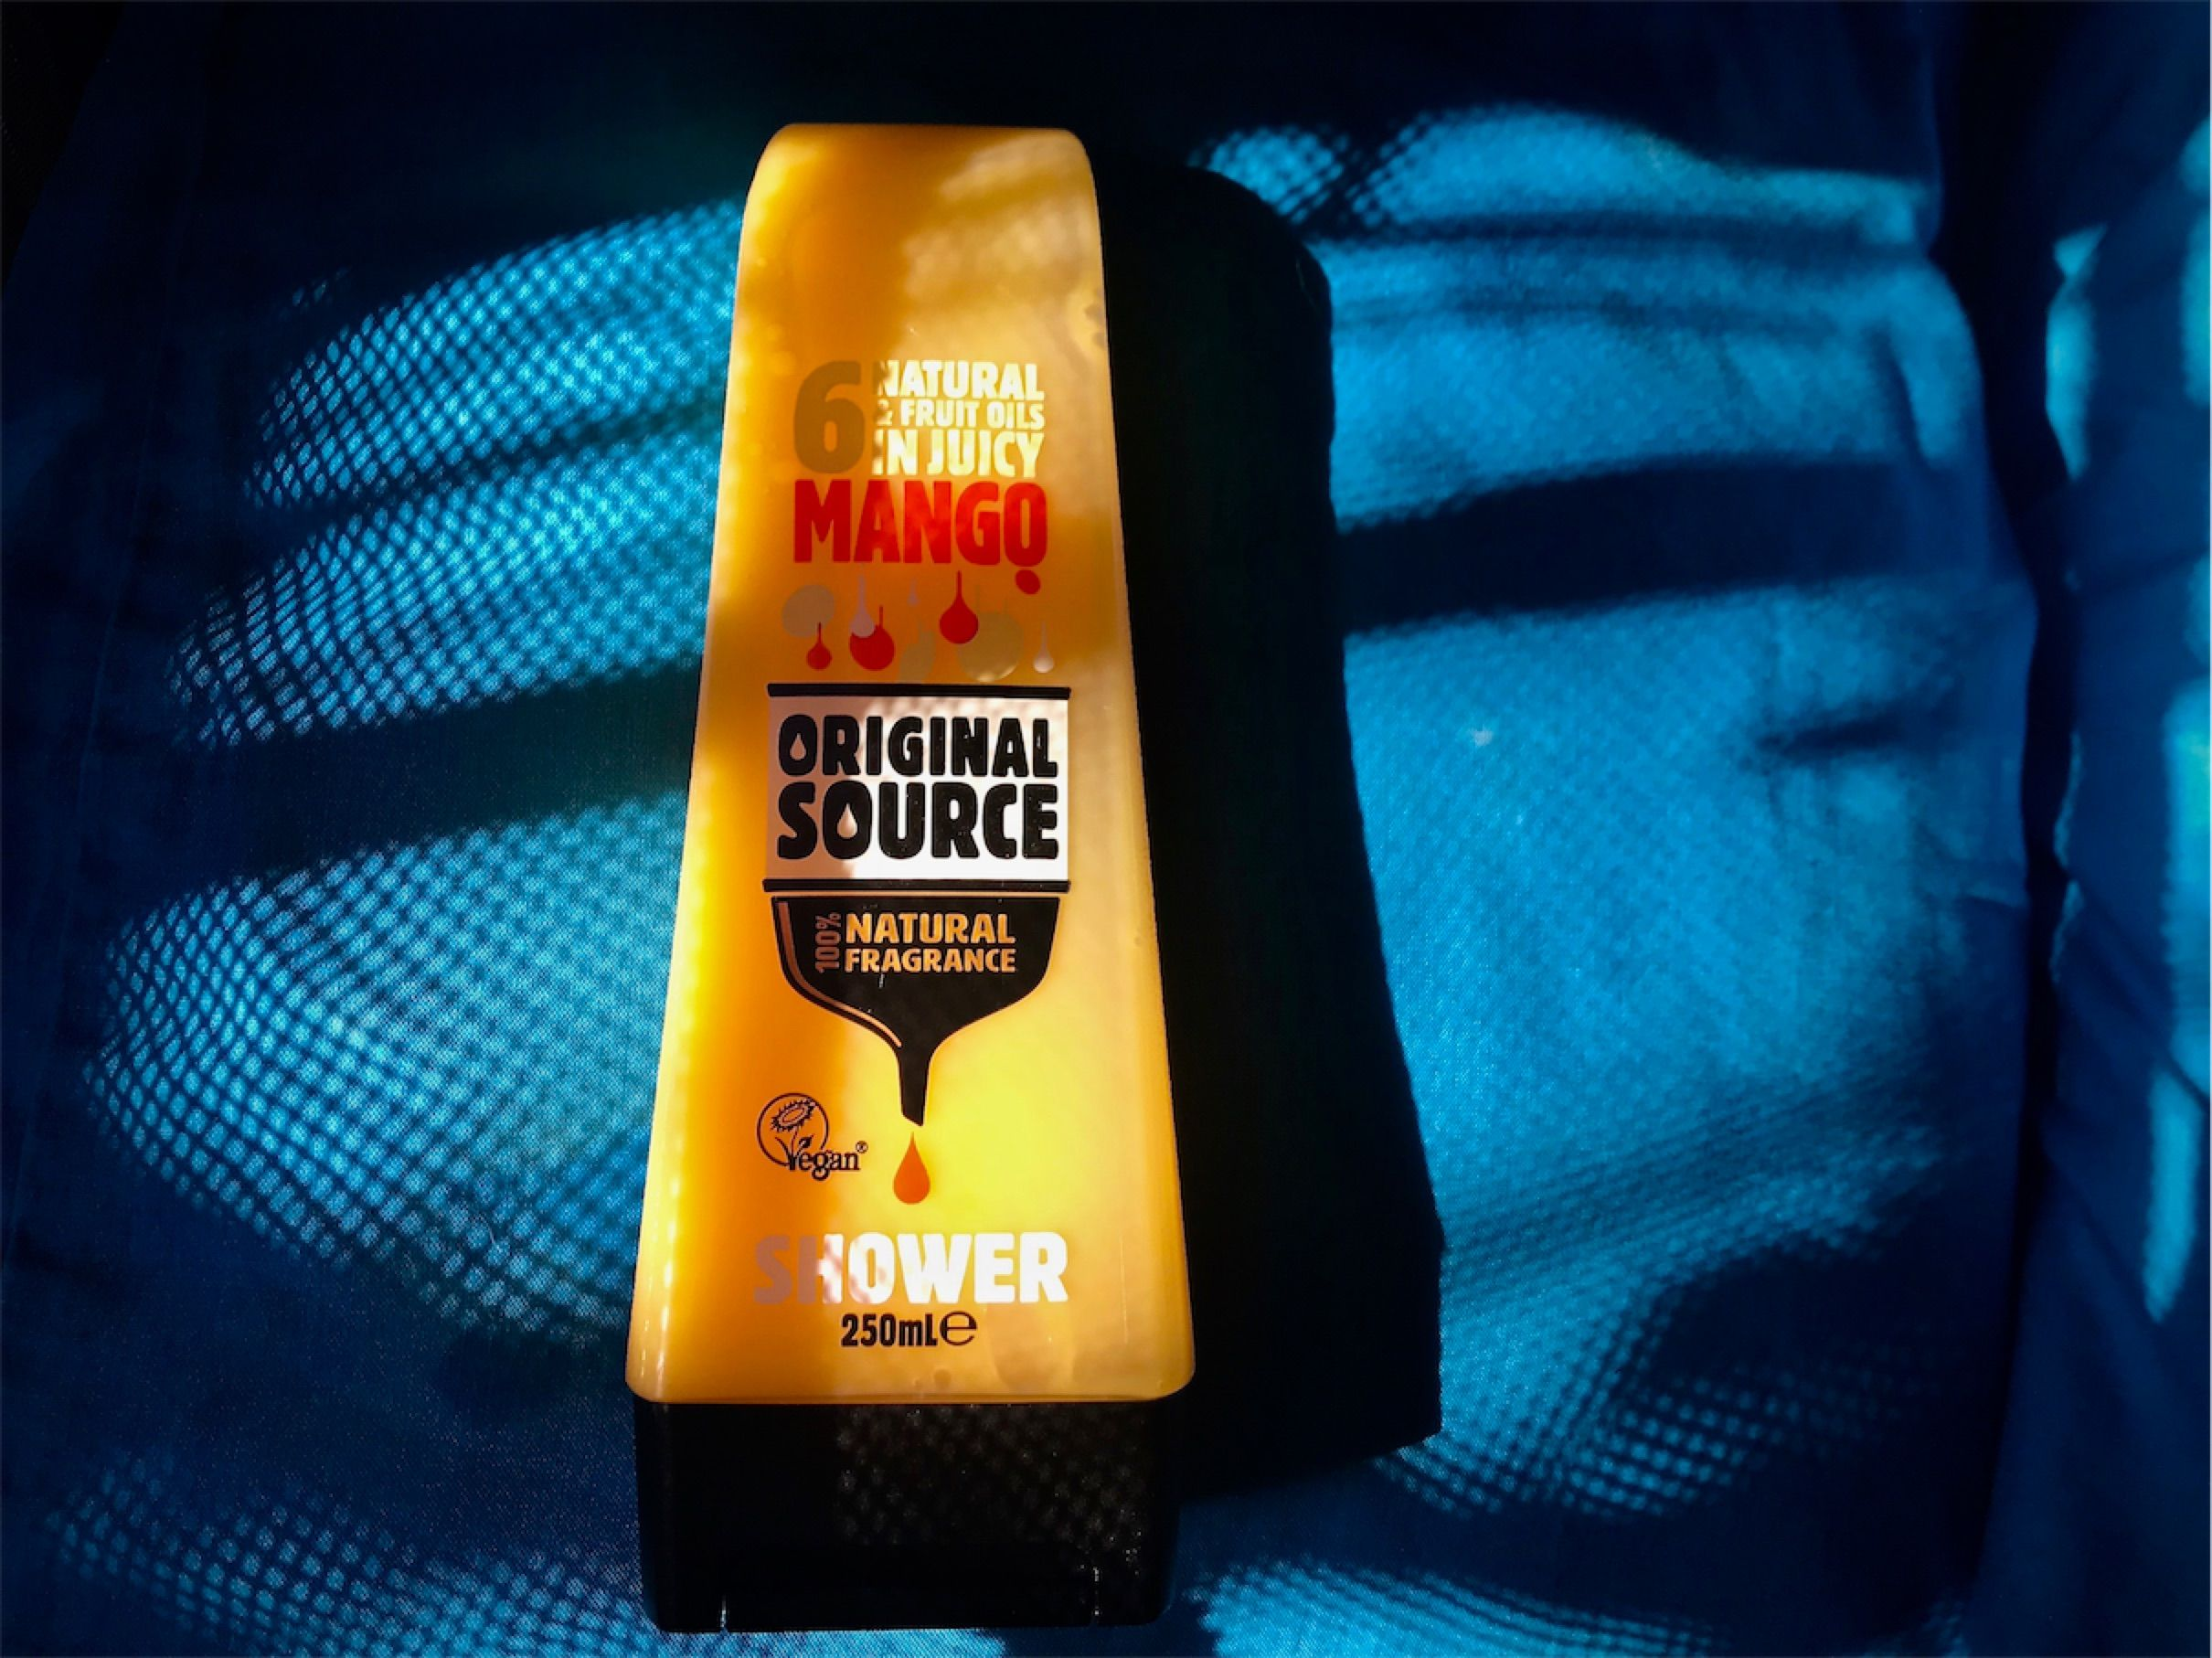 image review Original Source Mango Shower